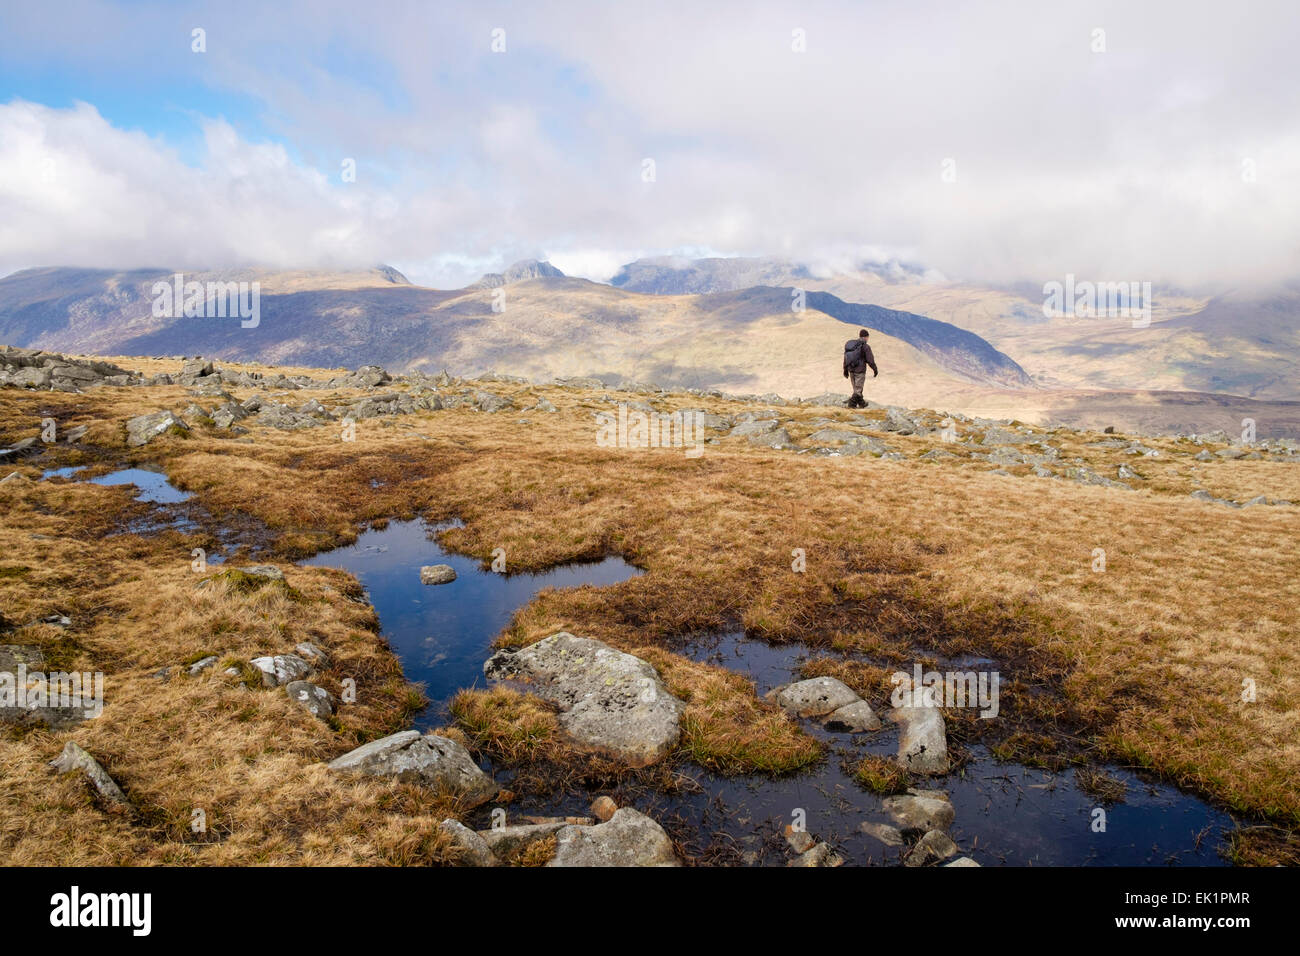 Upland pool on Moel Siabod with view to distant mountains and solitary walker in Snowdonia National Park (Eryri). - Stock Image